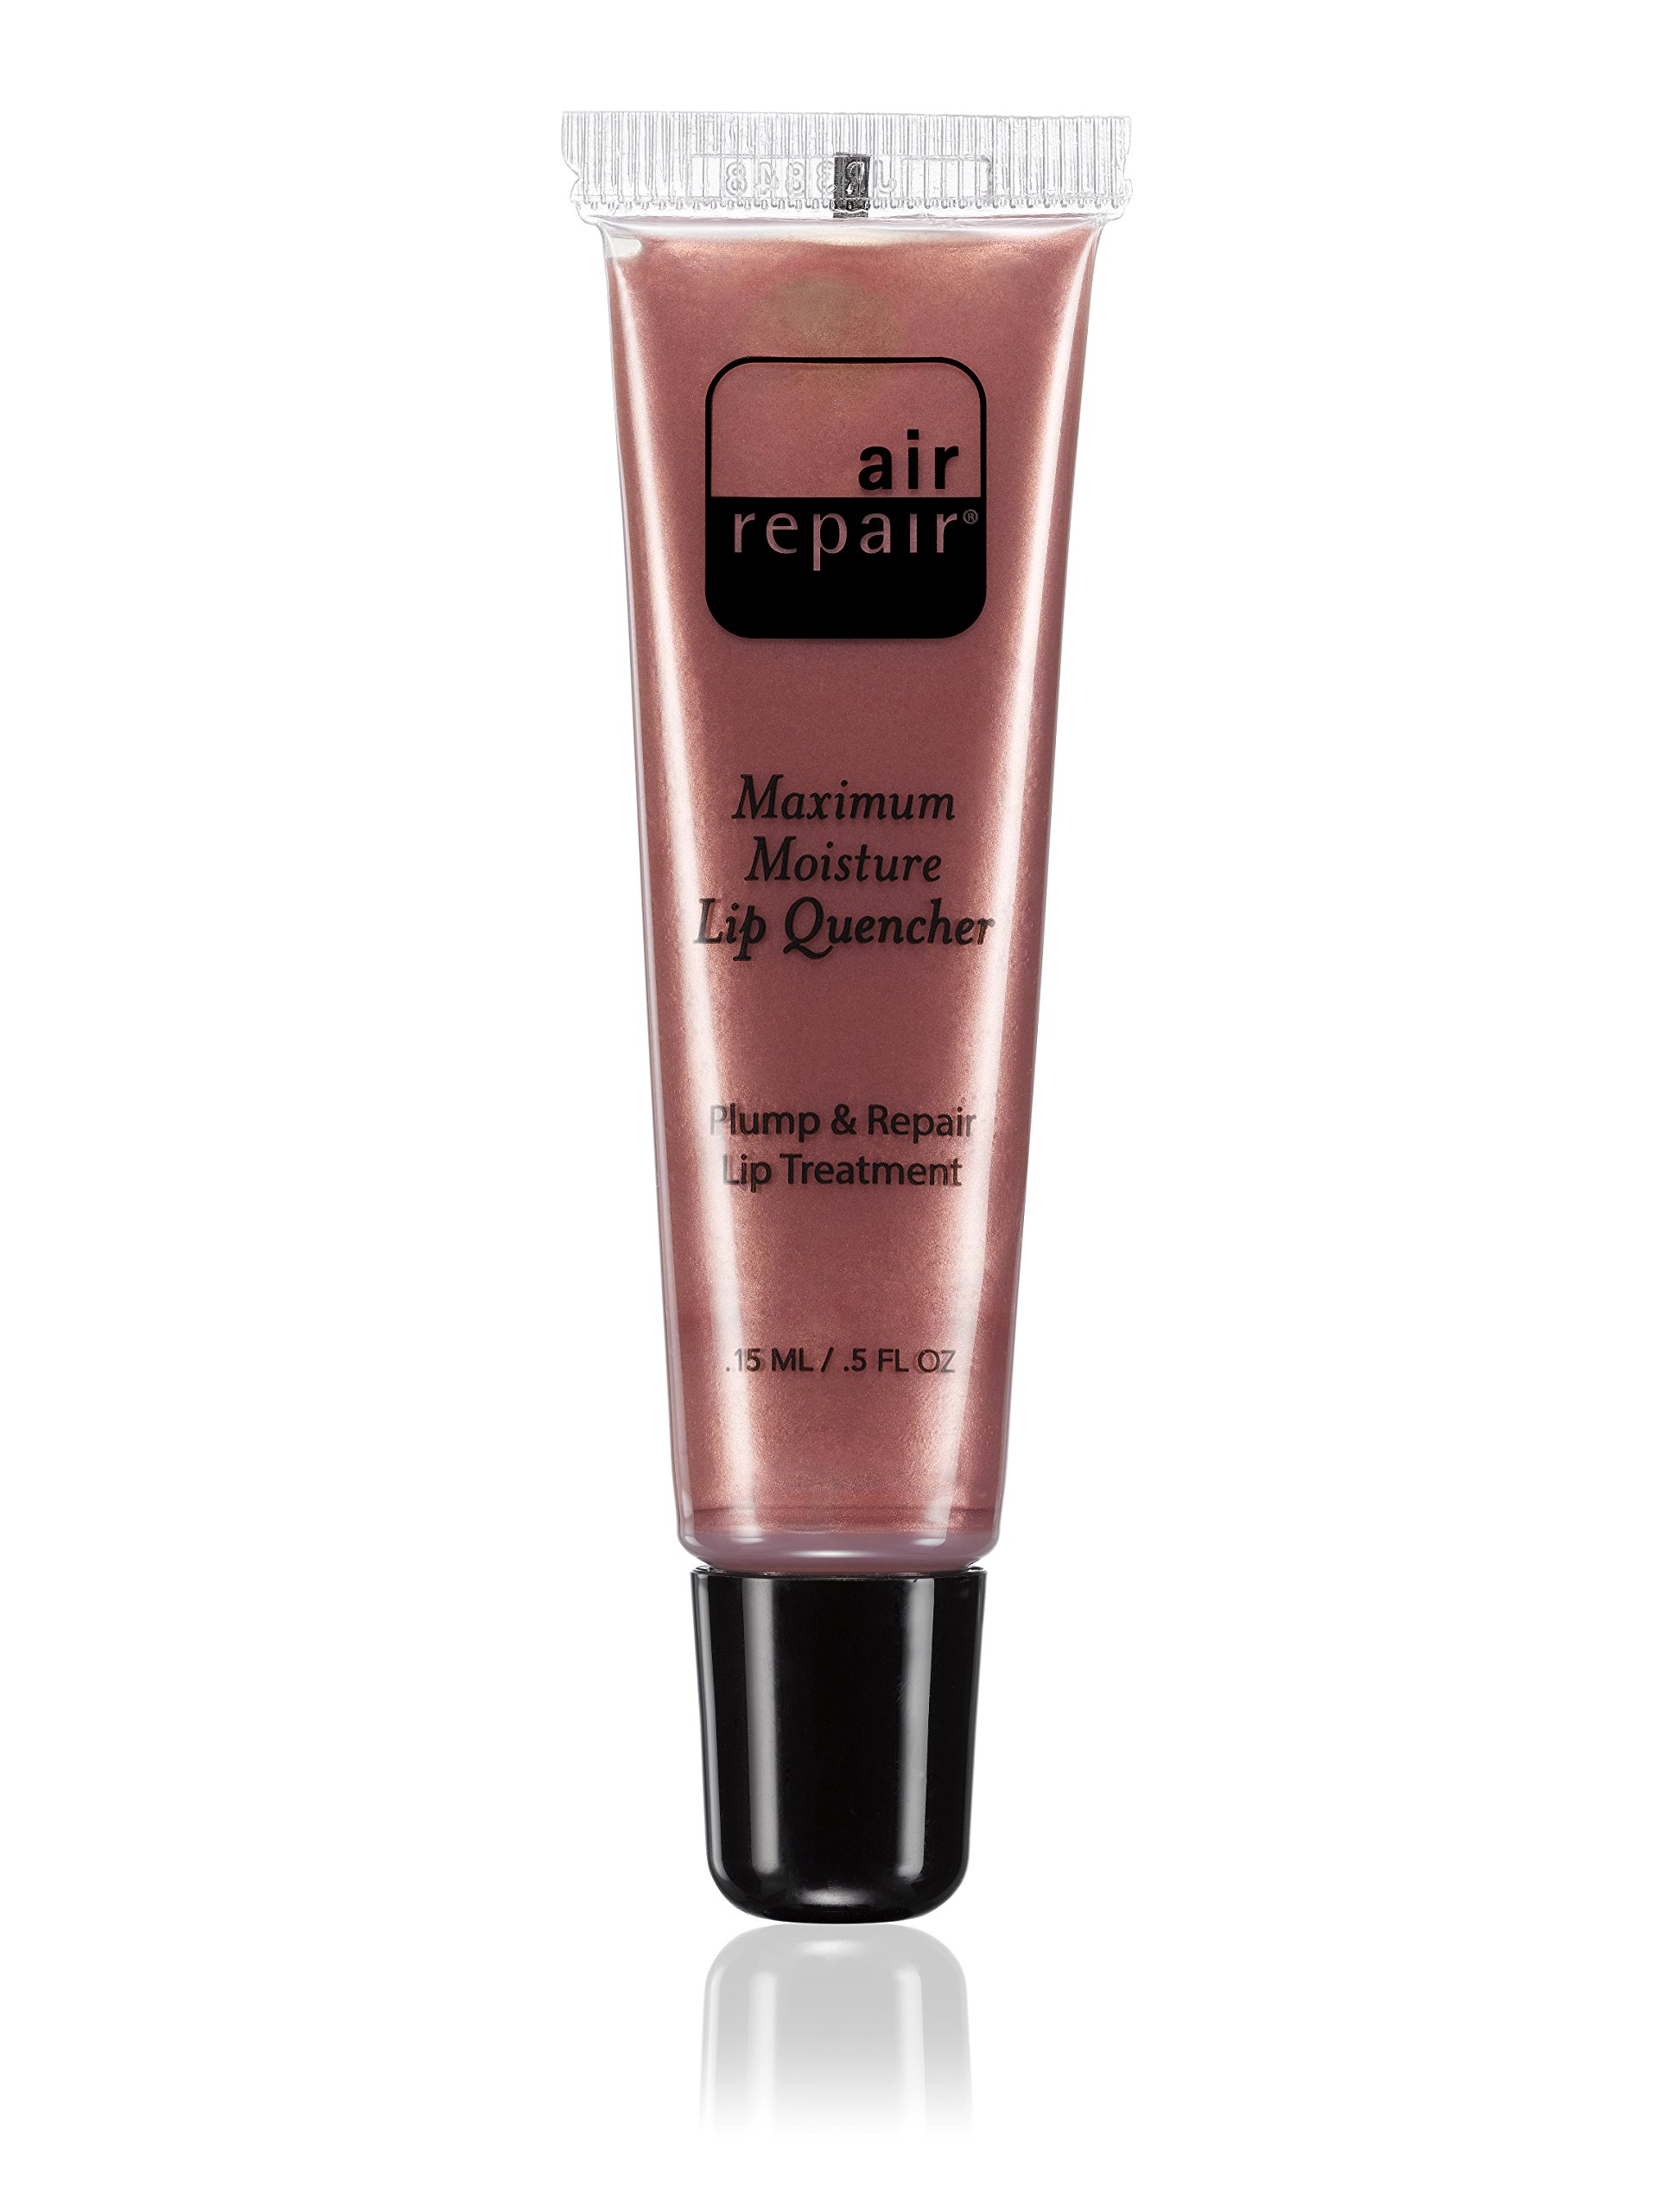 Air Repair Skincare - Maximum Moisture Lip Quencher - Plum & Repair Lip Treatment